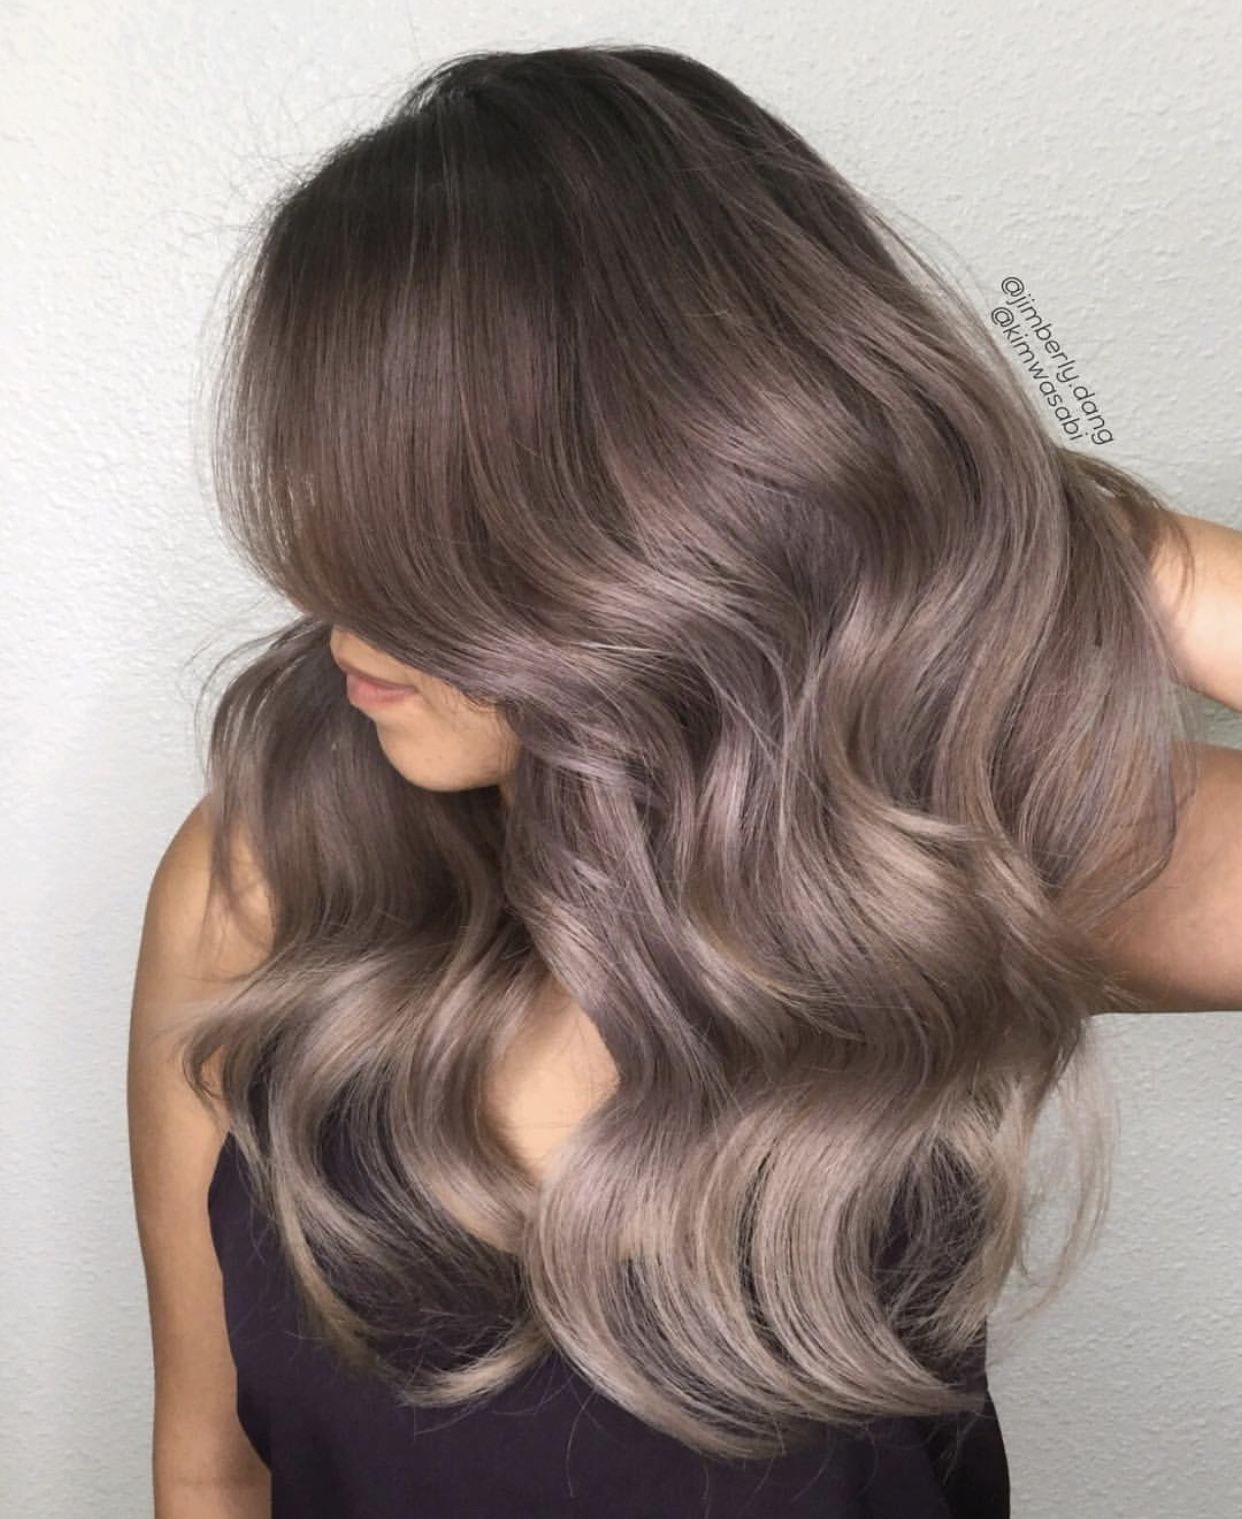 Pin By Tease Blow Dry Bar On Goddess Pinterest Hair Coloring